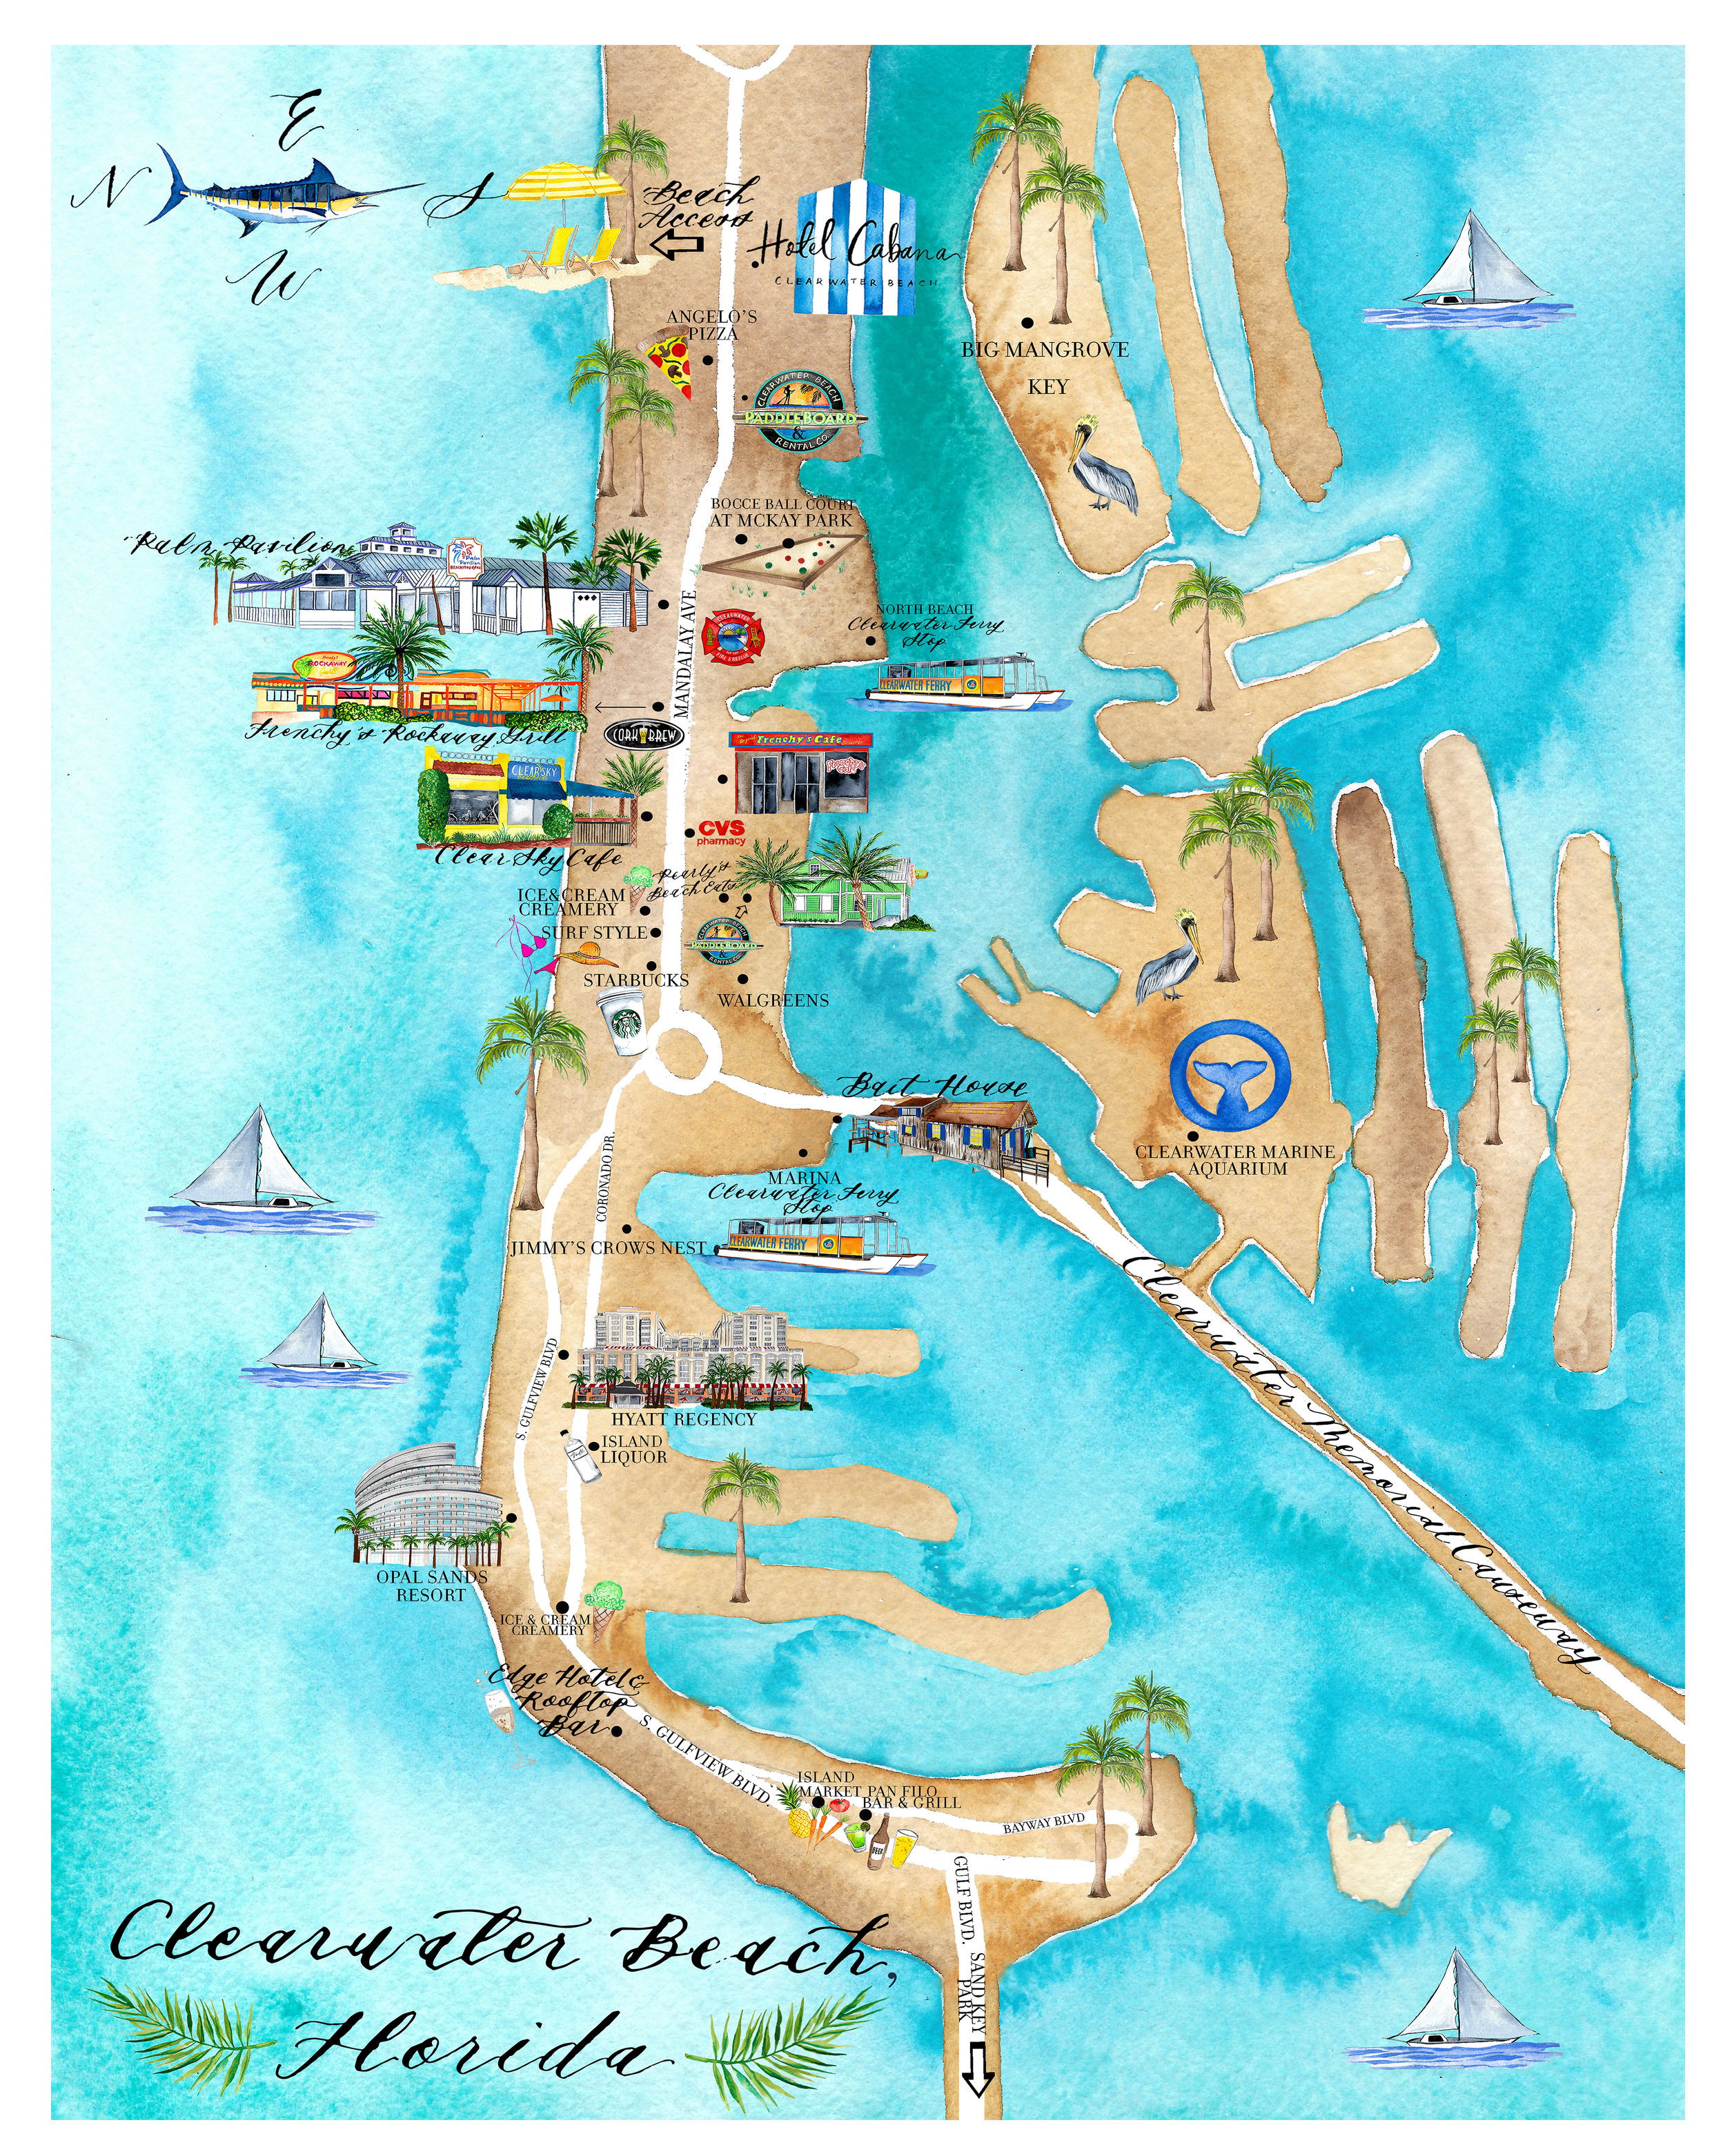 Custom Art Project : : Clearwater Beach Map — LISA GILMORE ... on eckerd college map, coral springs fl map, miami seaquarium map, downtown clearwater map, fort de soto park map, mystic aquarium map, discovery cove map, jacksonville zoo and gardens map, palm beach zoo map, university of tampa map, shedd aquarium chicago map, sand key beach map, tampa convention center map, tampa general hospital map, busch gardens map, st. pete clearwater map, raymond james stadium map, tarpon springs sponge docks map, national aquarium in baltimore map, cypress gardens map,